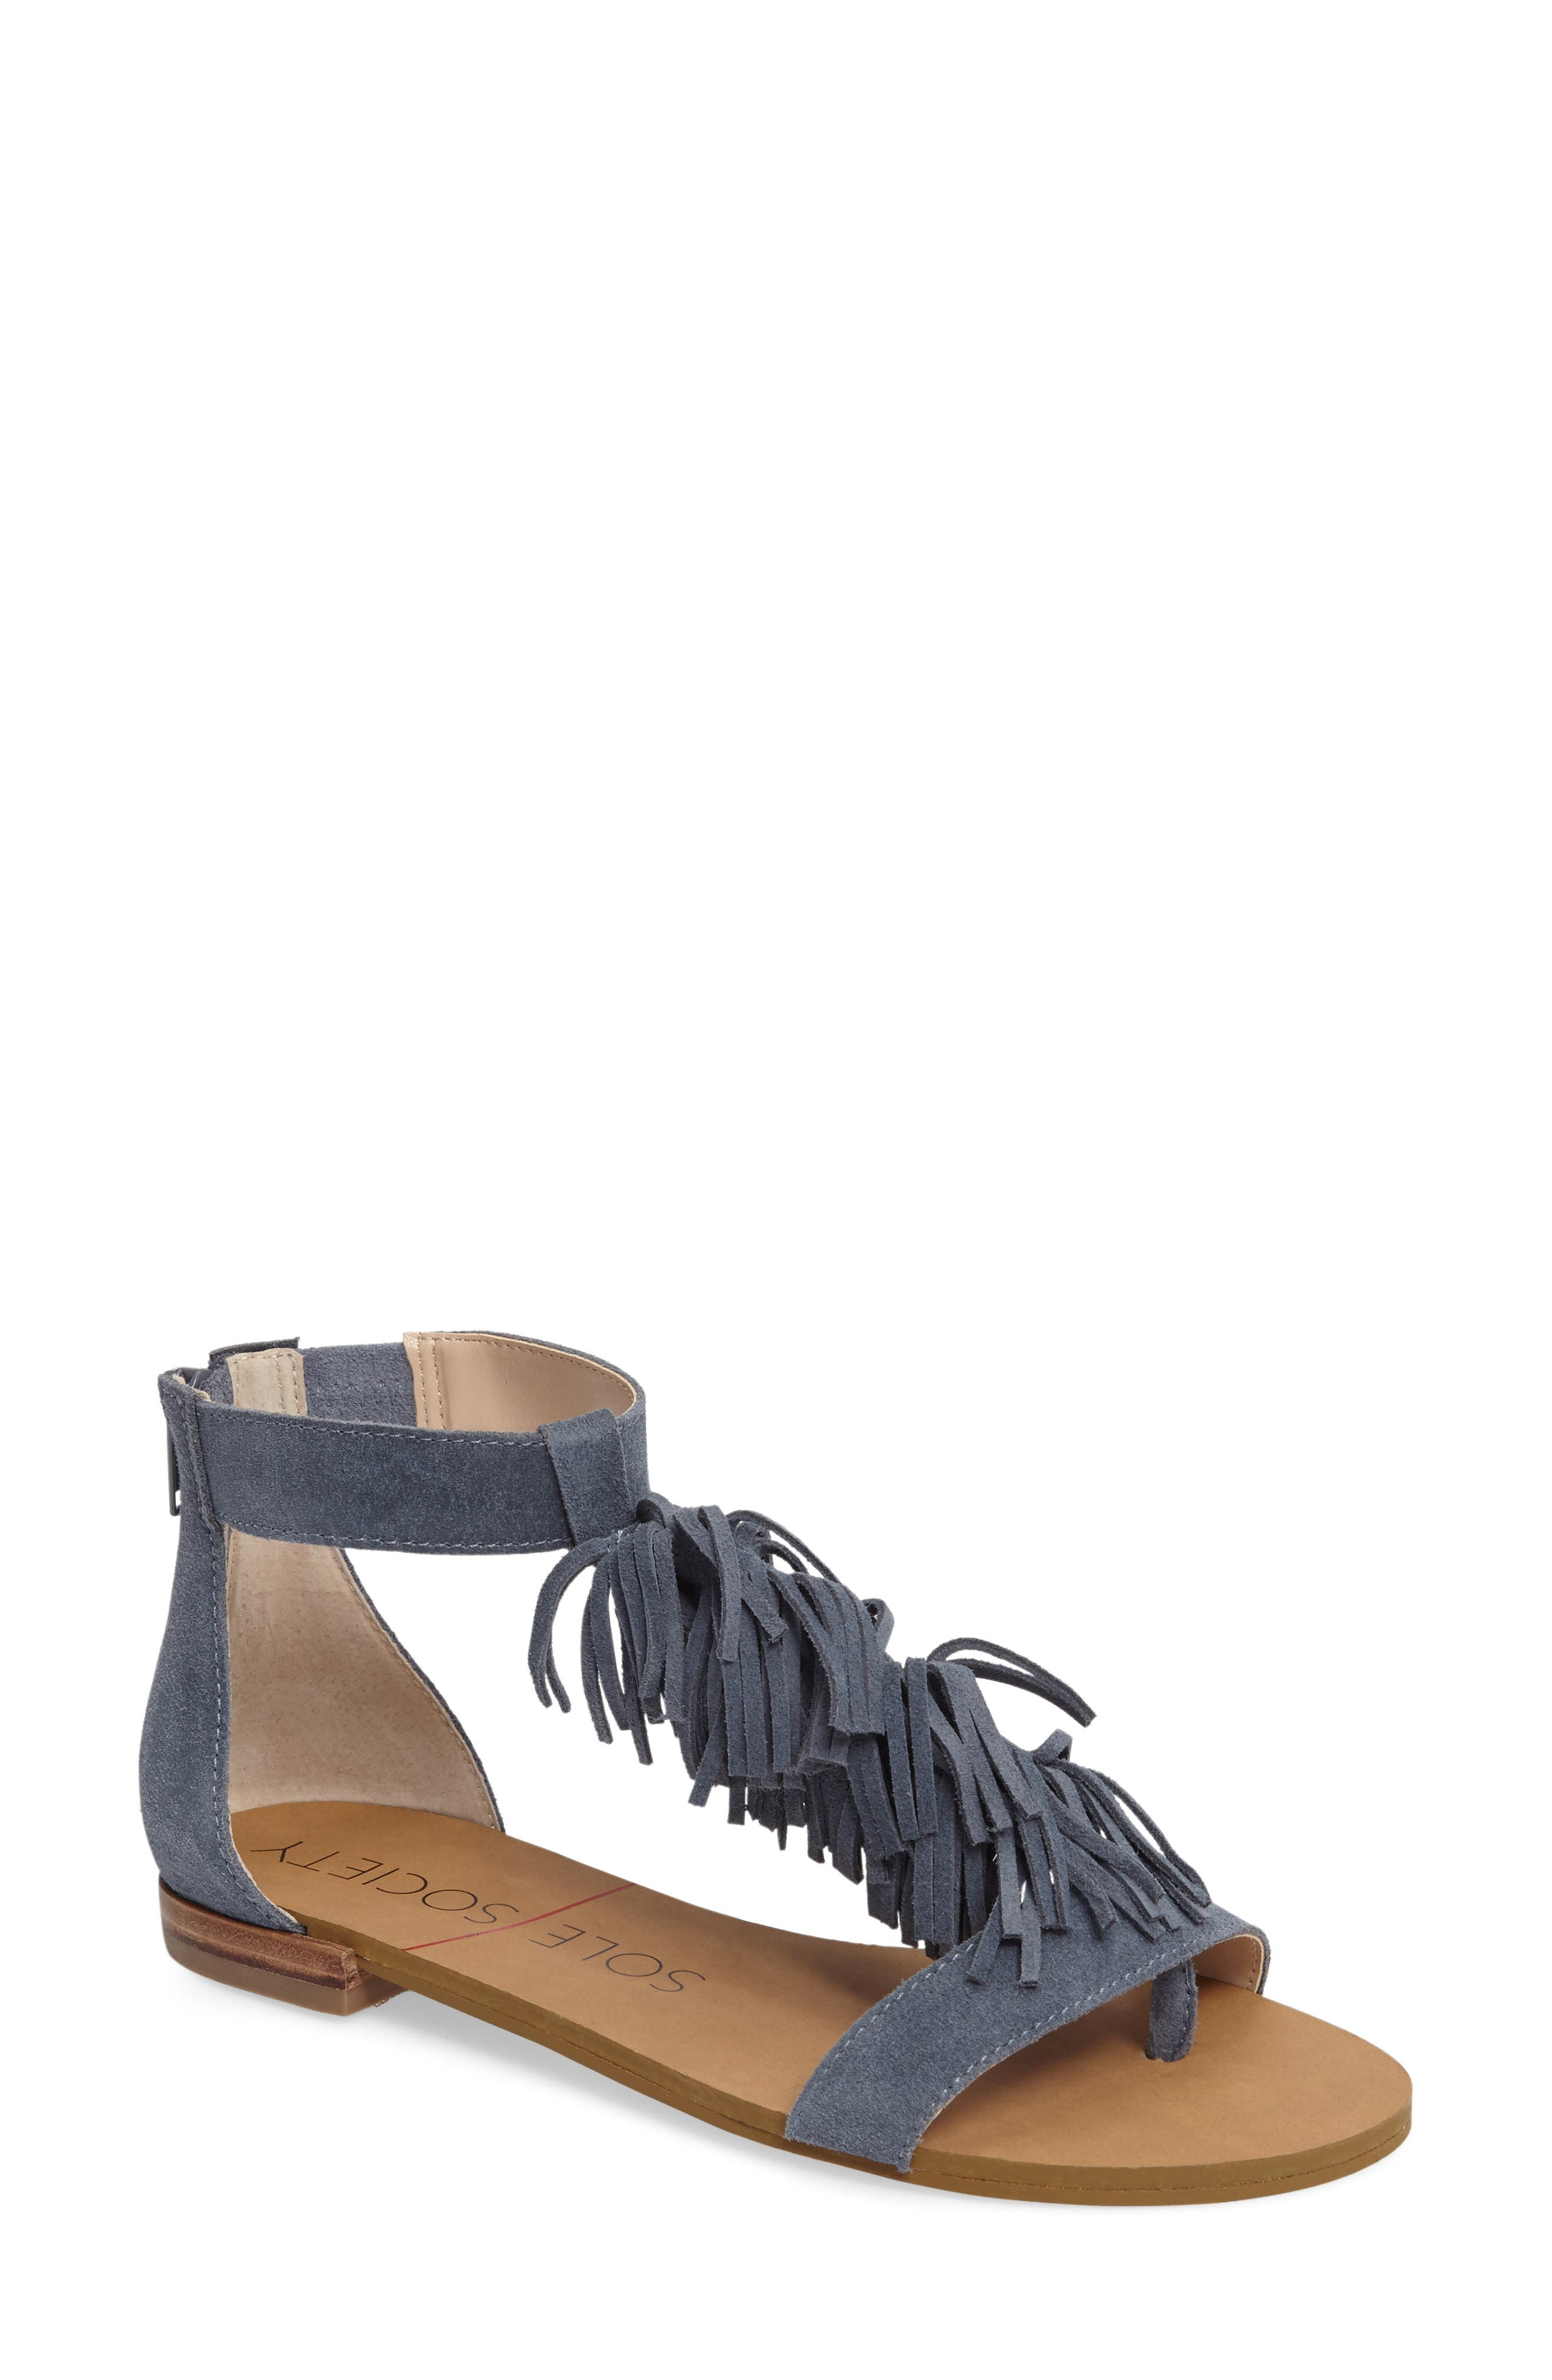 Main Image - Sole Society Koa Fringed T-Strap Sandal (Women)